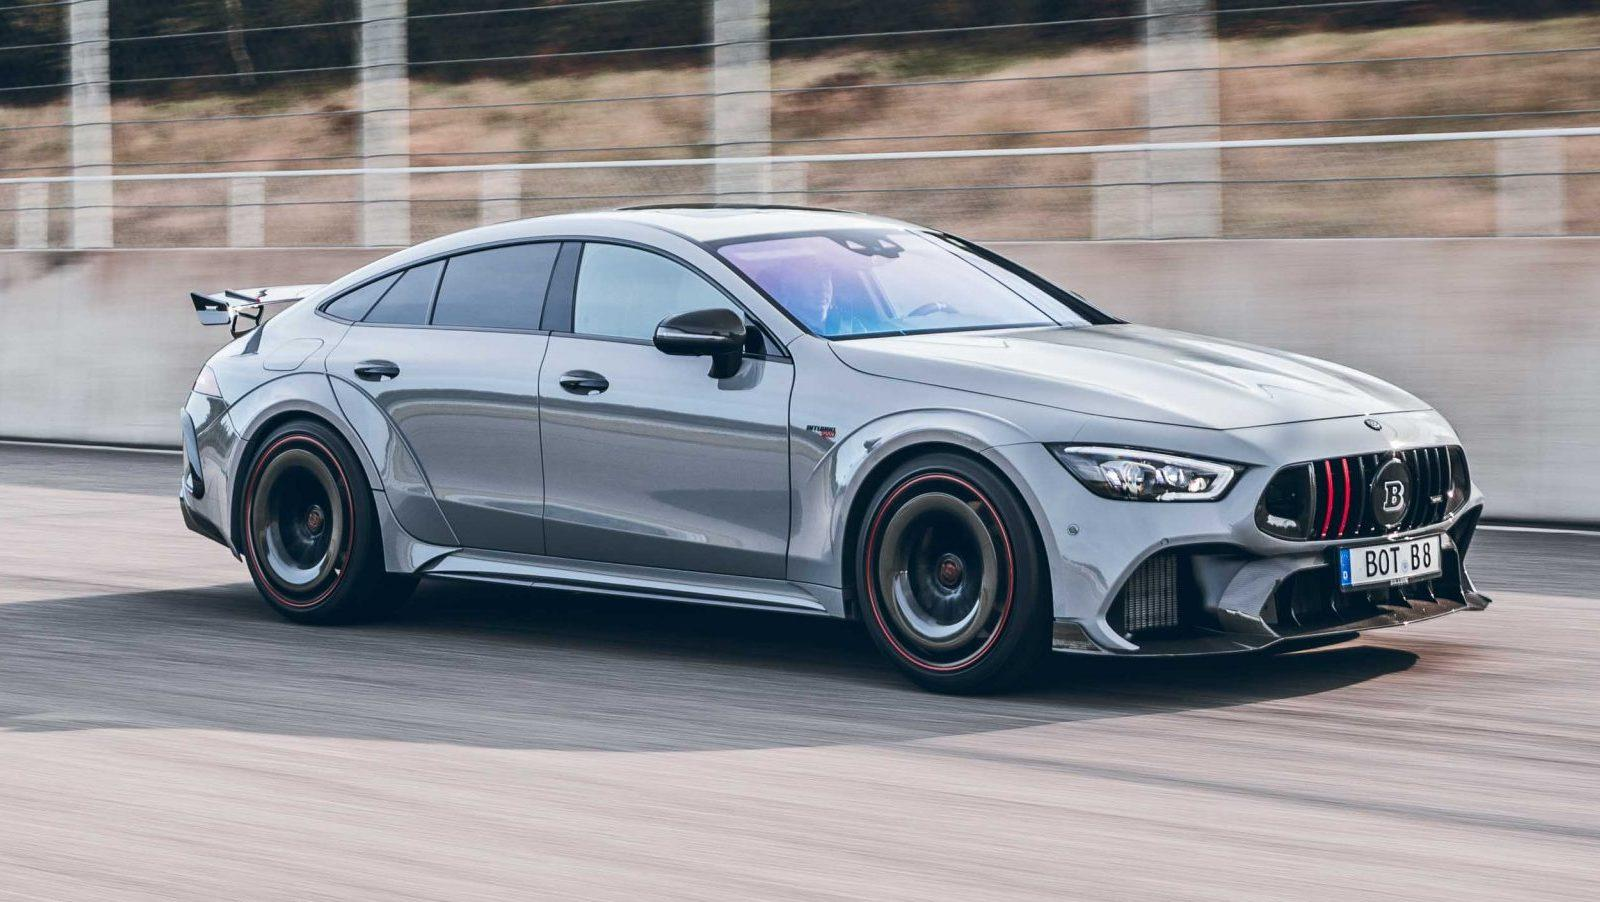 Brabus Rocket 900 op basis van Mercedes-AMG GT 63 S 4-Door